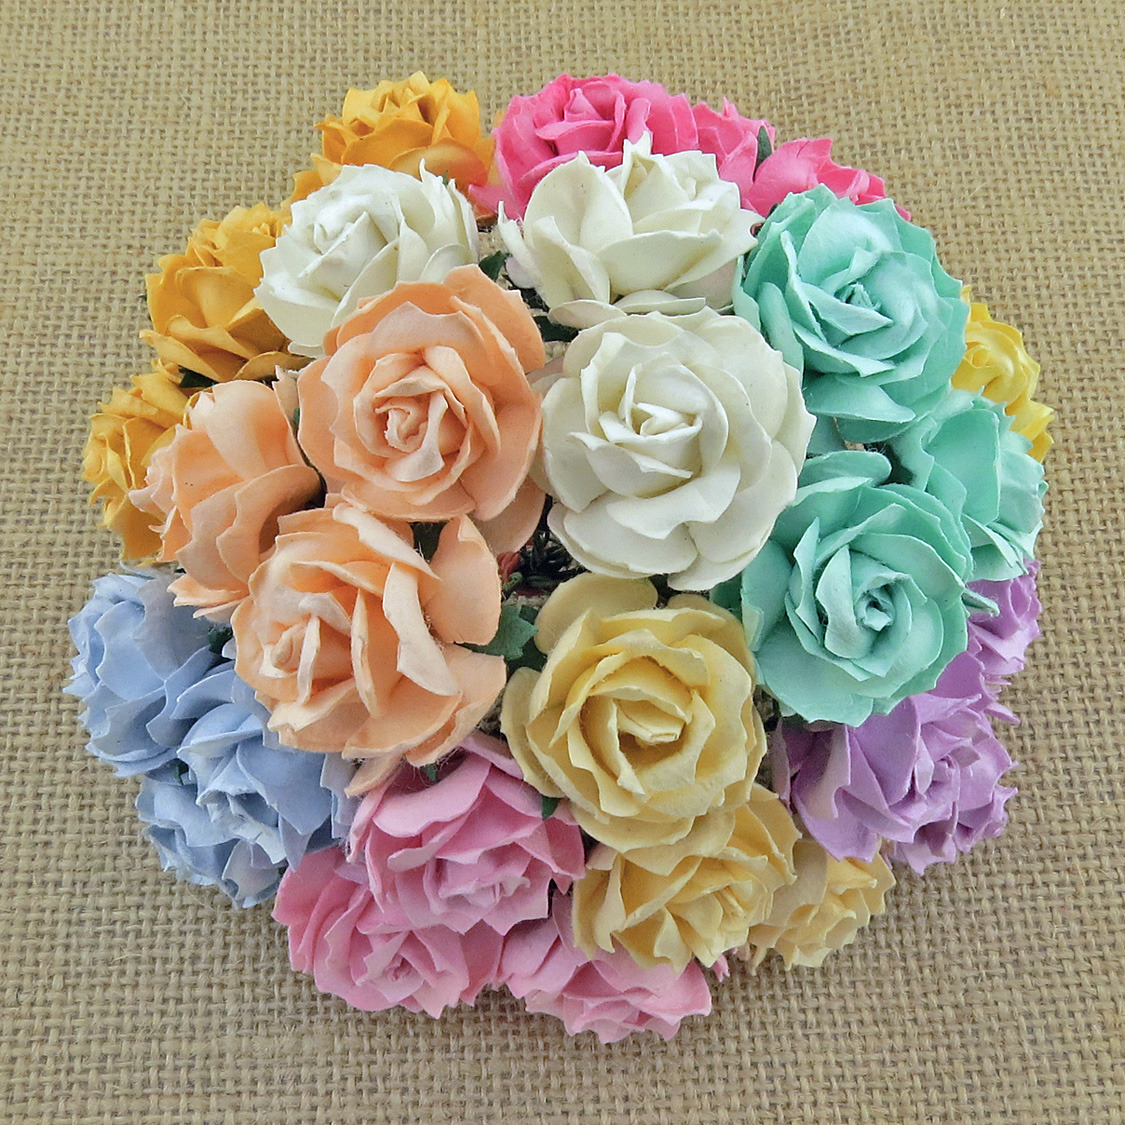 50 MIXED PASTEL COLOUR MULBERRY PAPER WILD ROSES 30mm